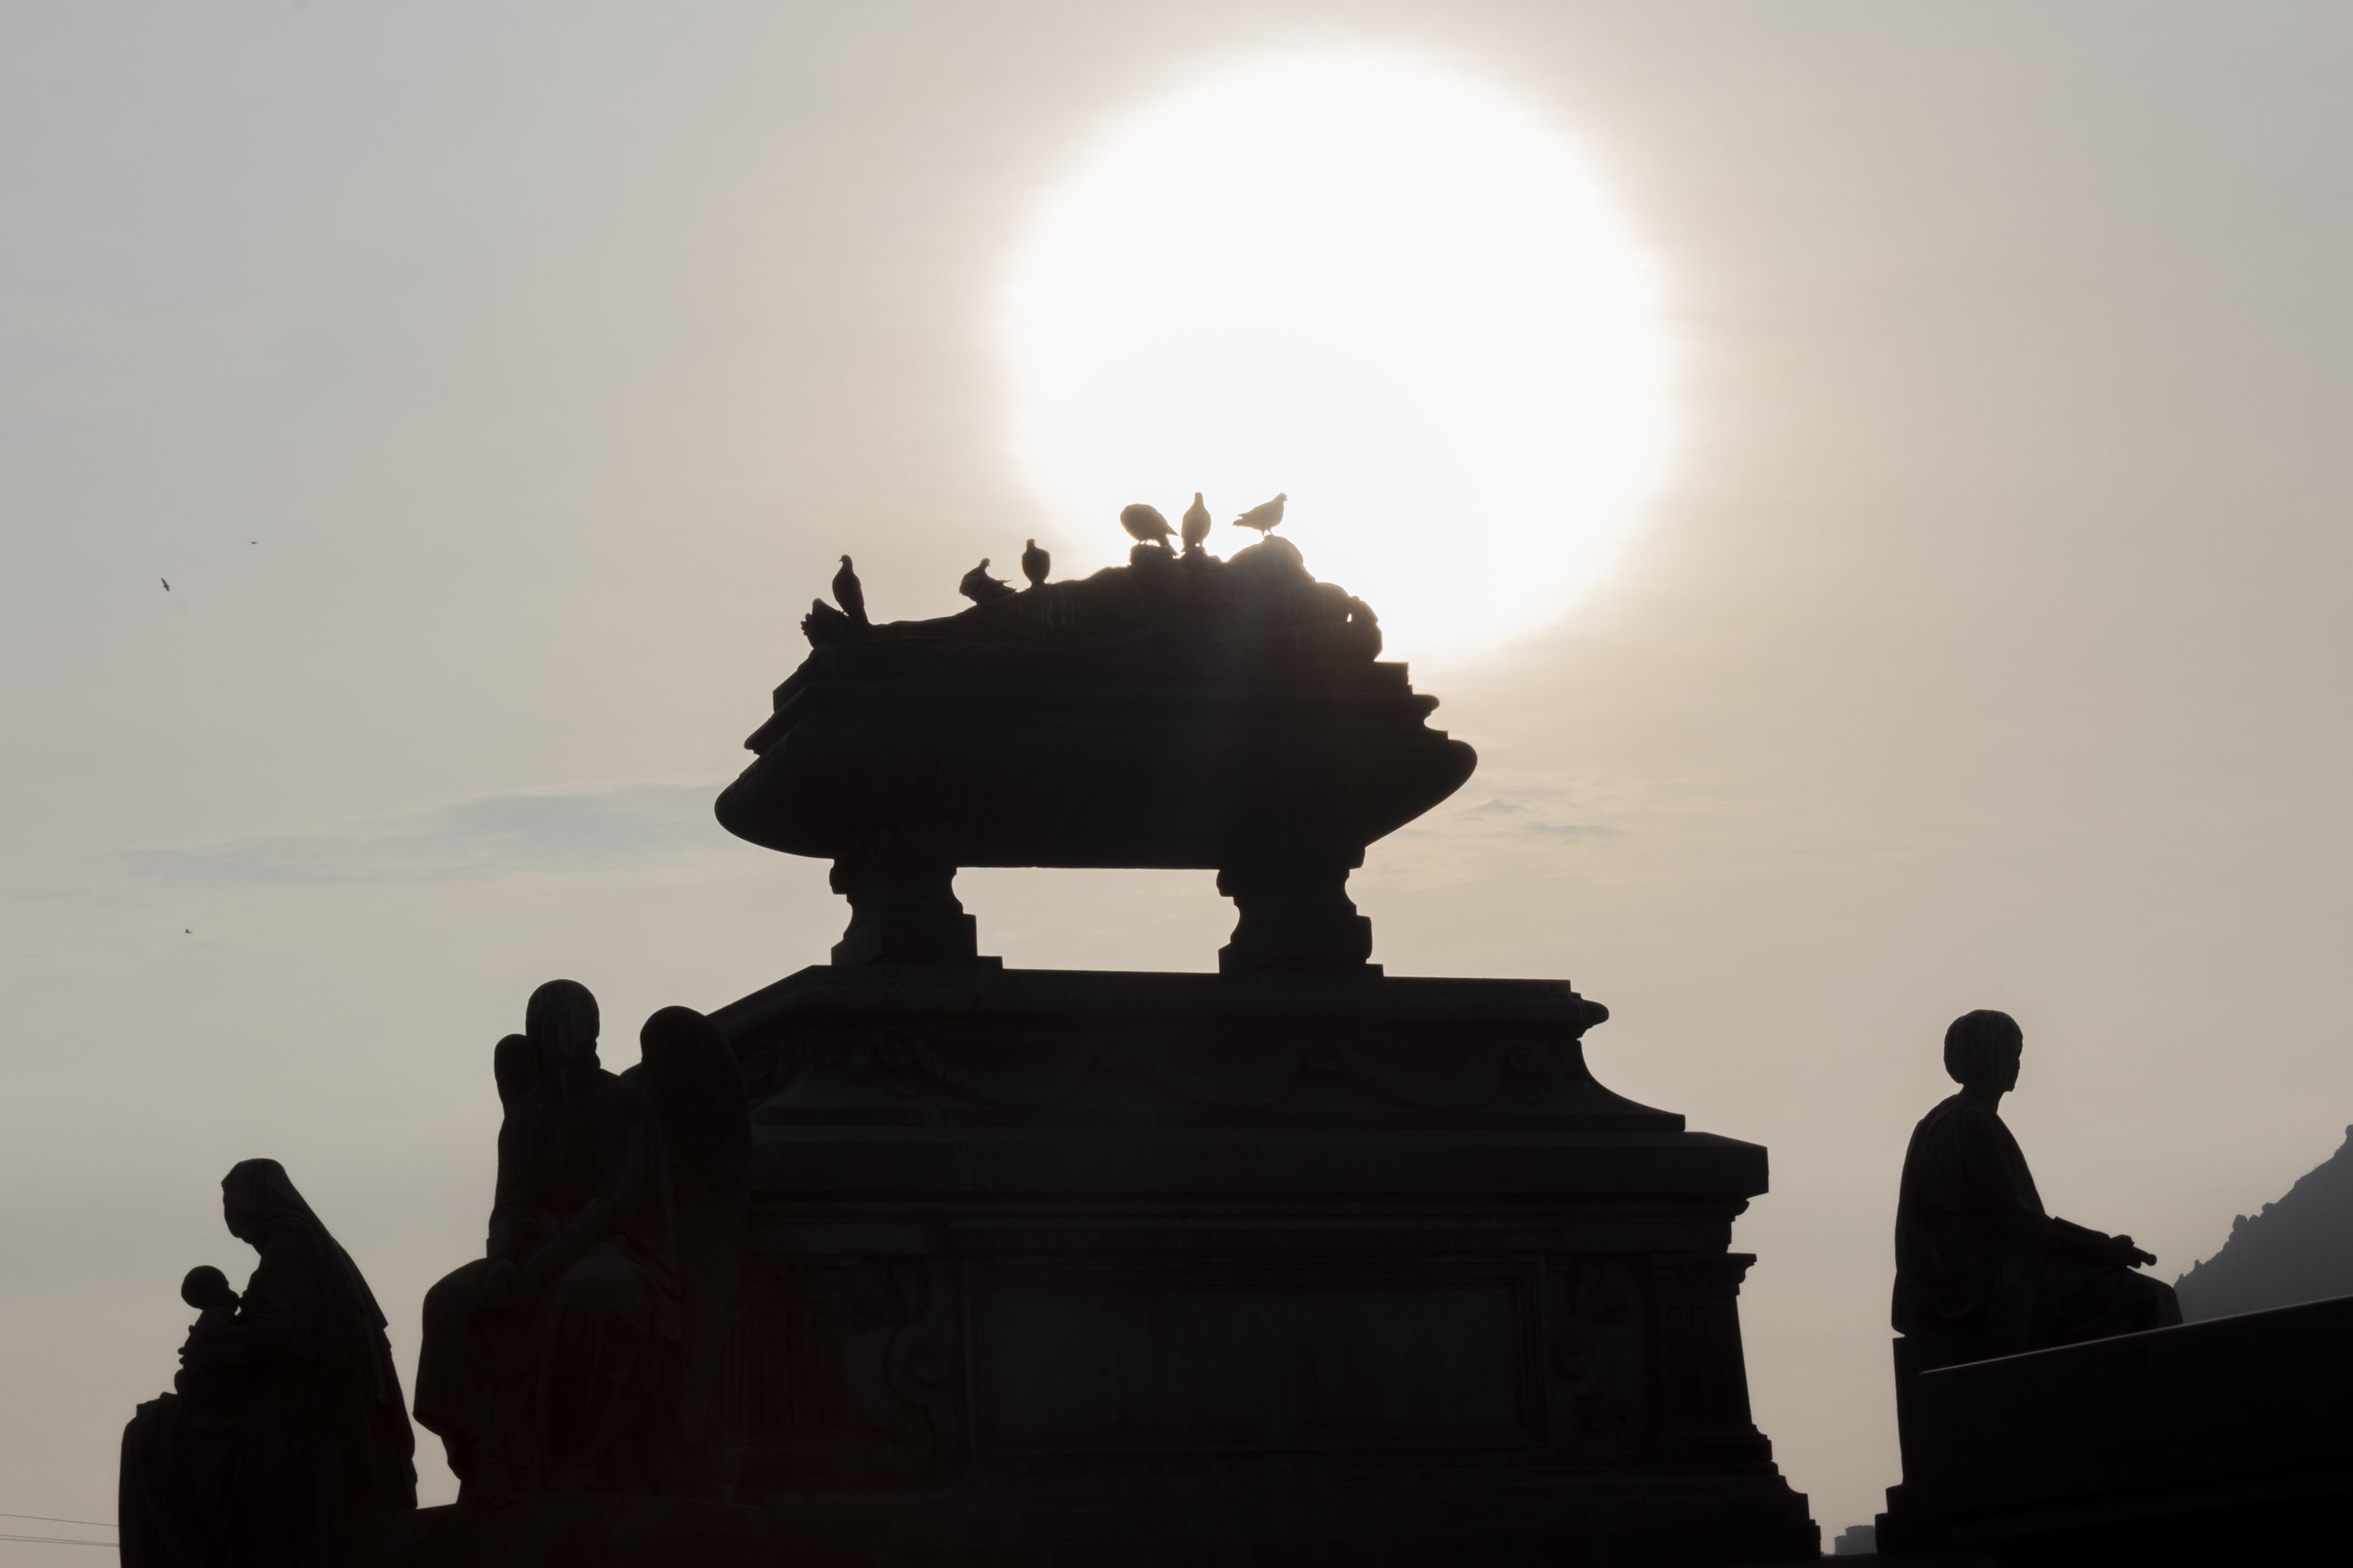 sky, statue, sculpture, architecture, silhouette, art and craft, the past, history, human representation, nature, travel destinations, representation, creativity, sunset, built structure, tourism, travel, sun, craft, no people, outdoors